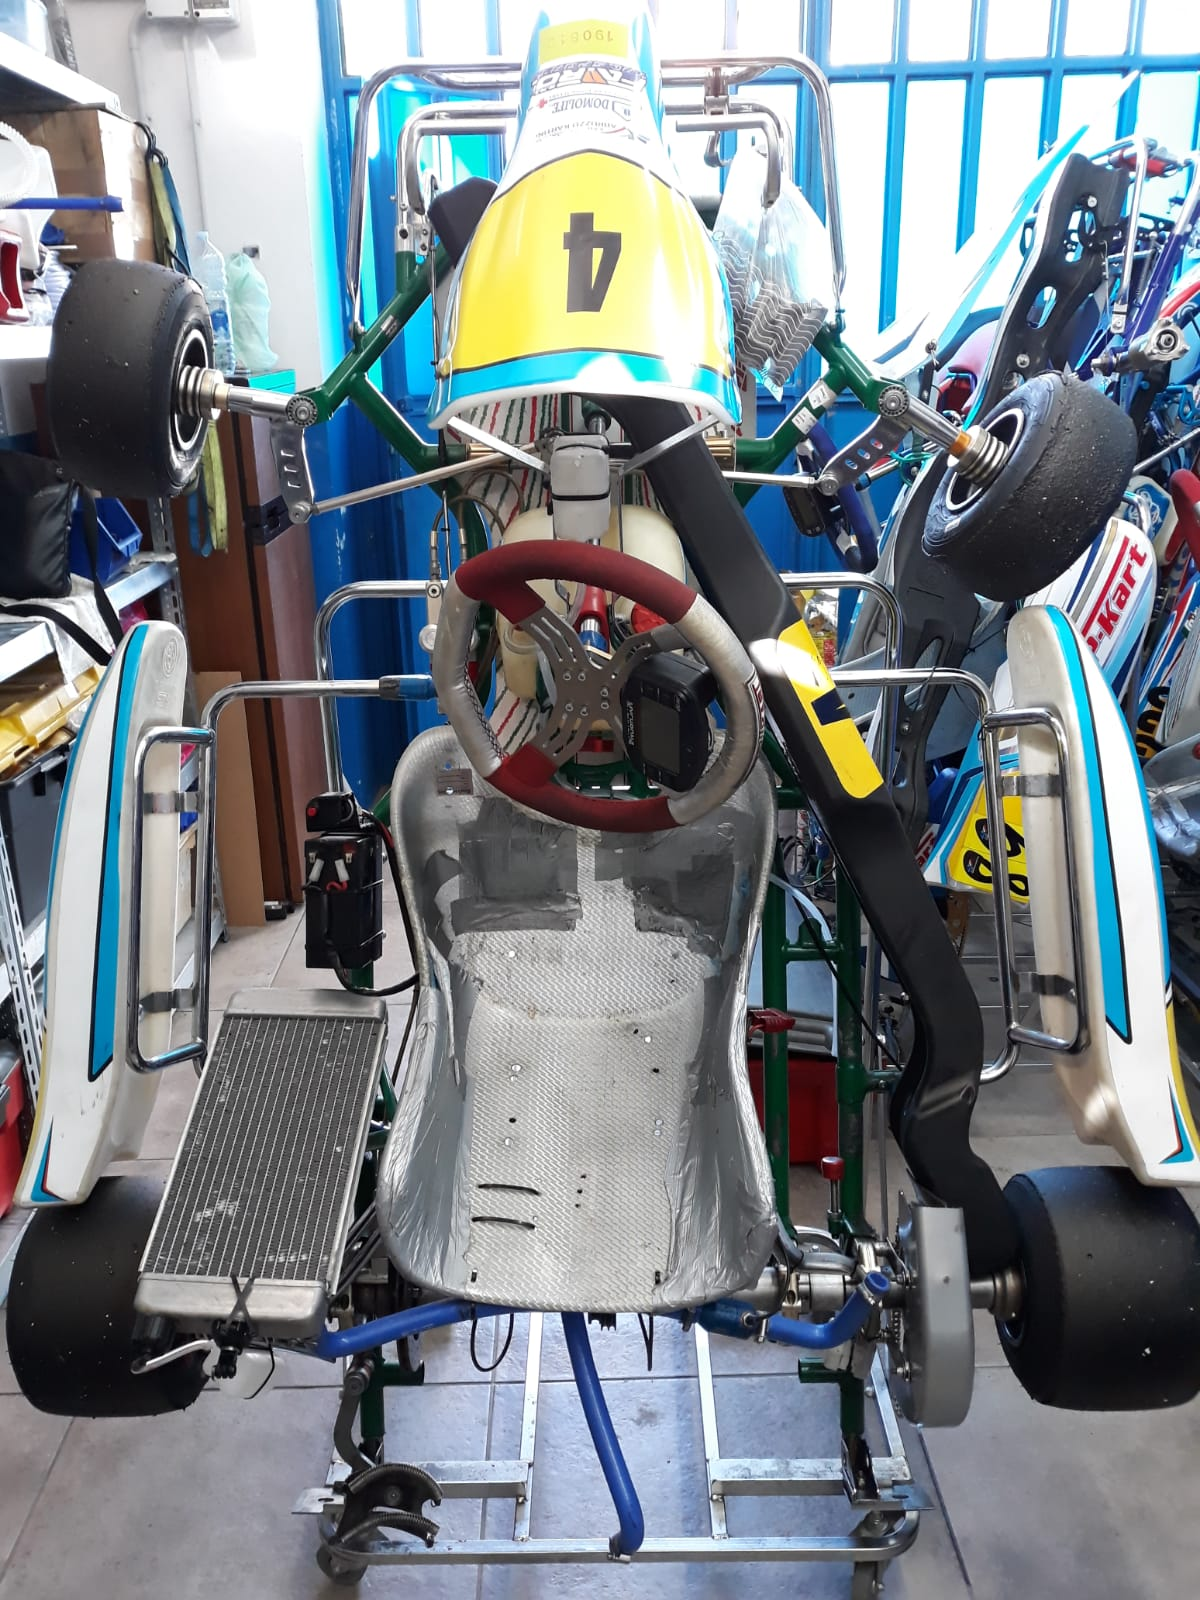 Vendo telaio Tony kart 401 - vendogo-kart it